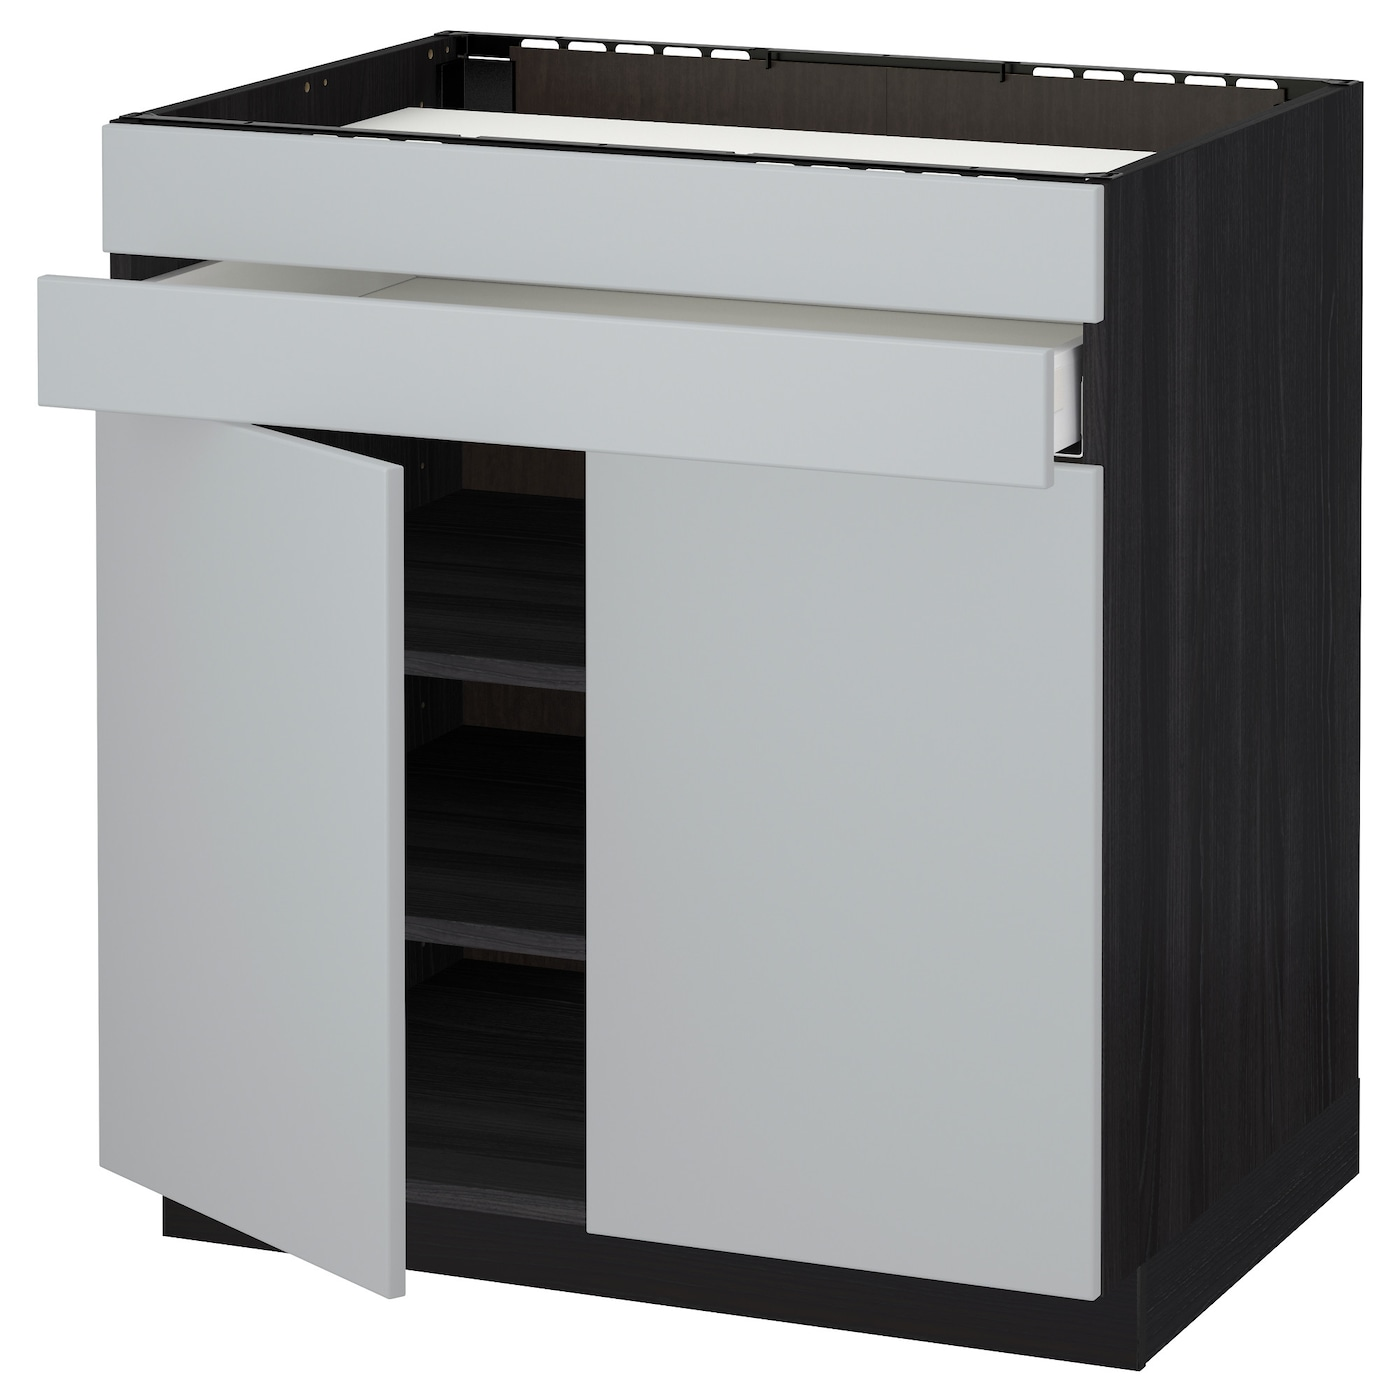 IKEA METOD/MAXIMERA base cb f hob/2 drs/2 fronts/1 drwr Smooth-running drawer with drawer stop.